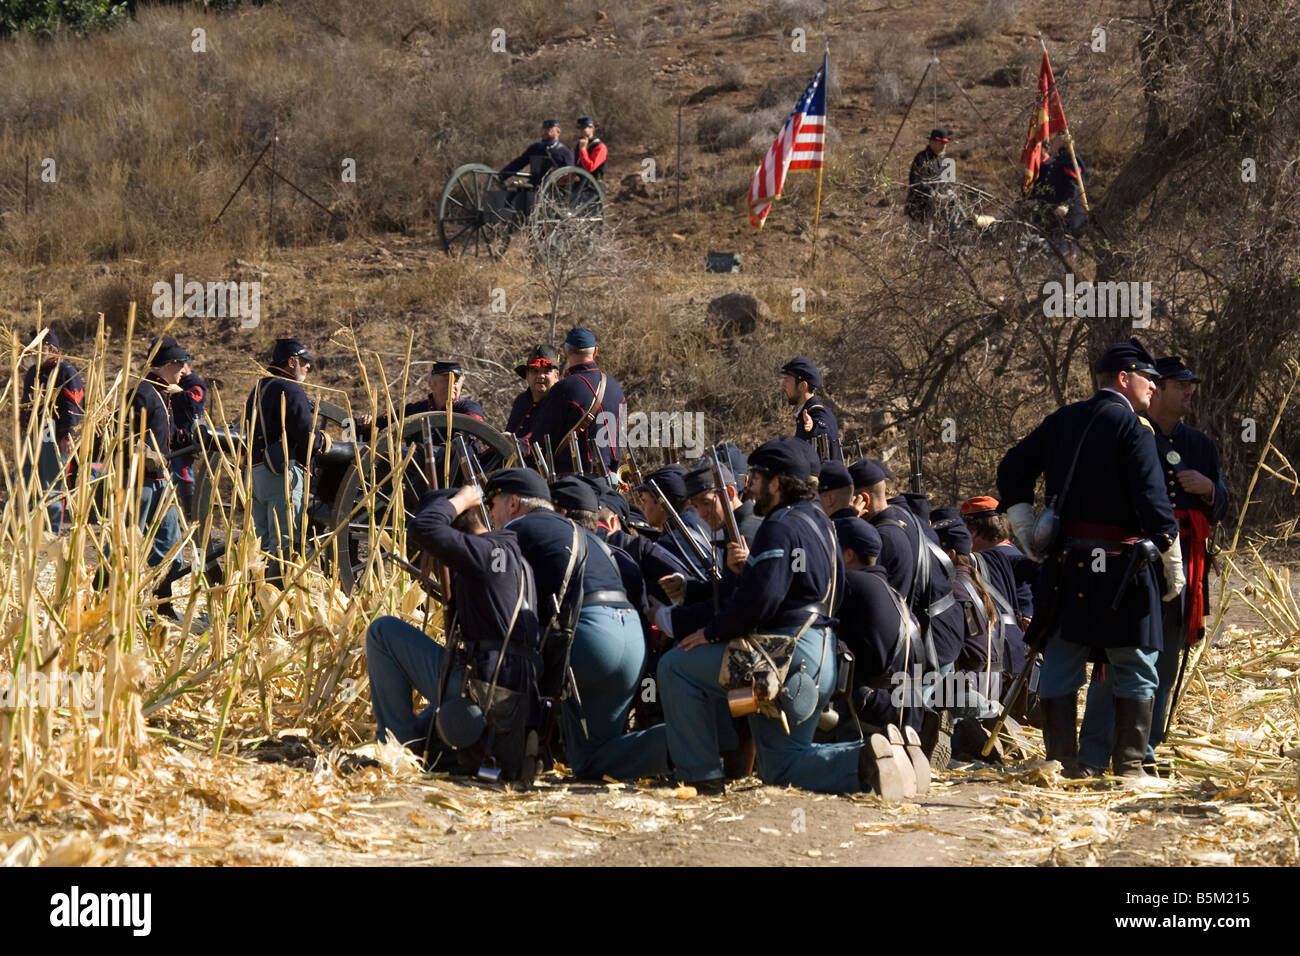 Union Soldiers in American Civil War Reenactment - Stock Image